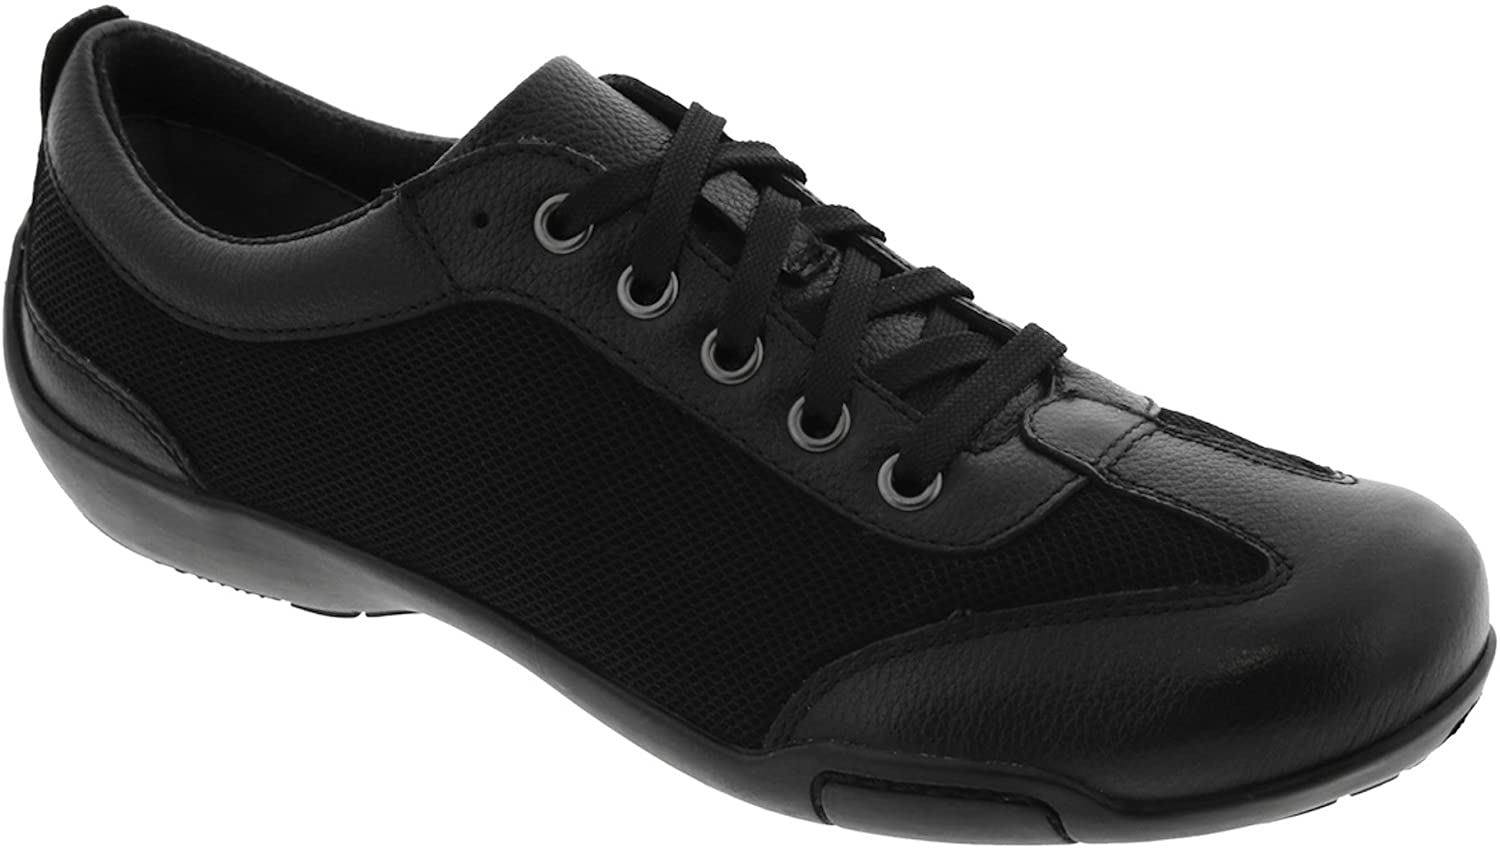 Ros Hommerson Camp - Women's Casual Comfort Shoe Leather lace-up